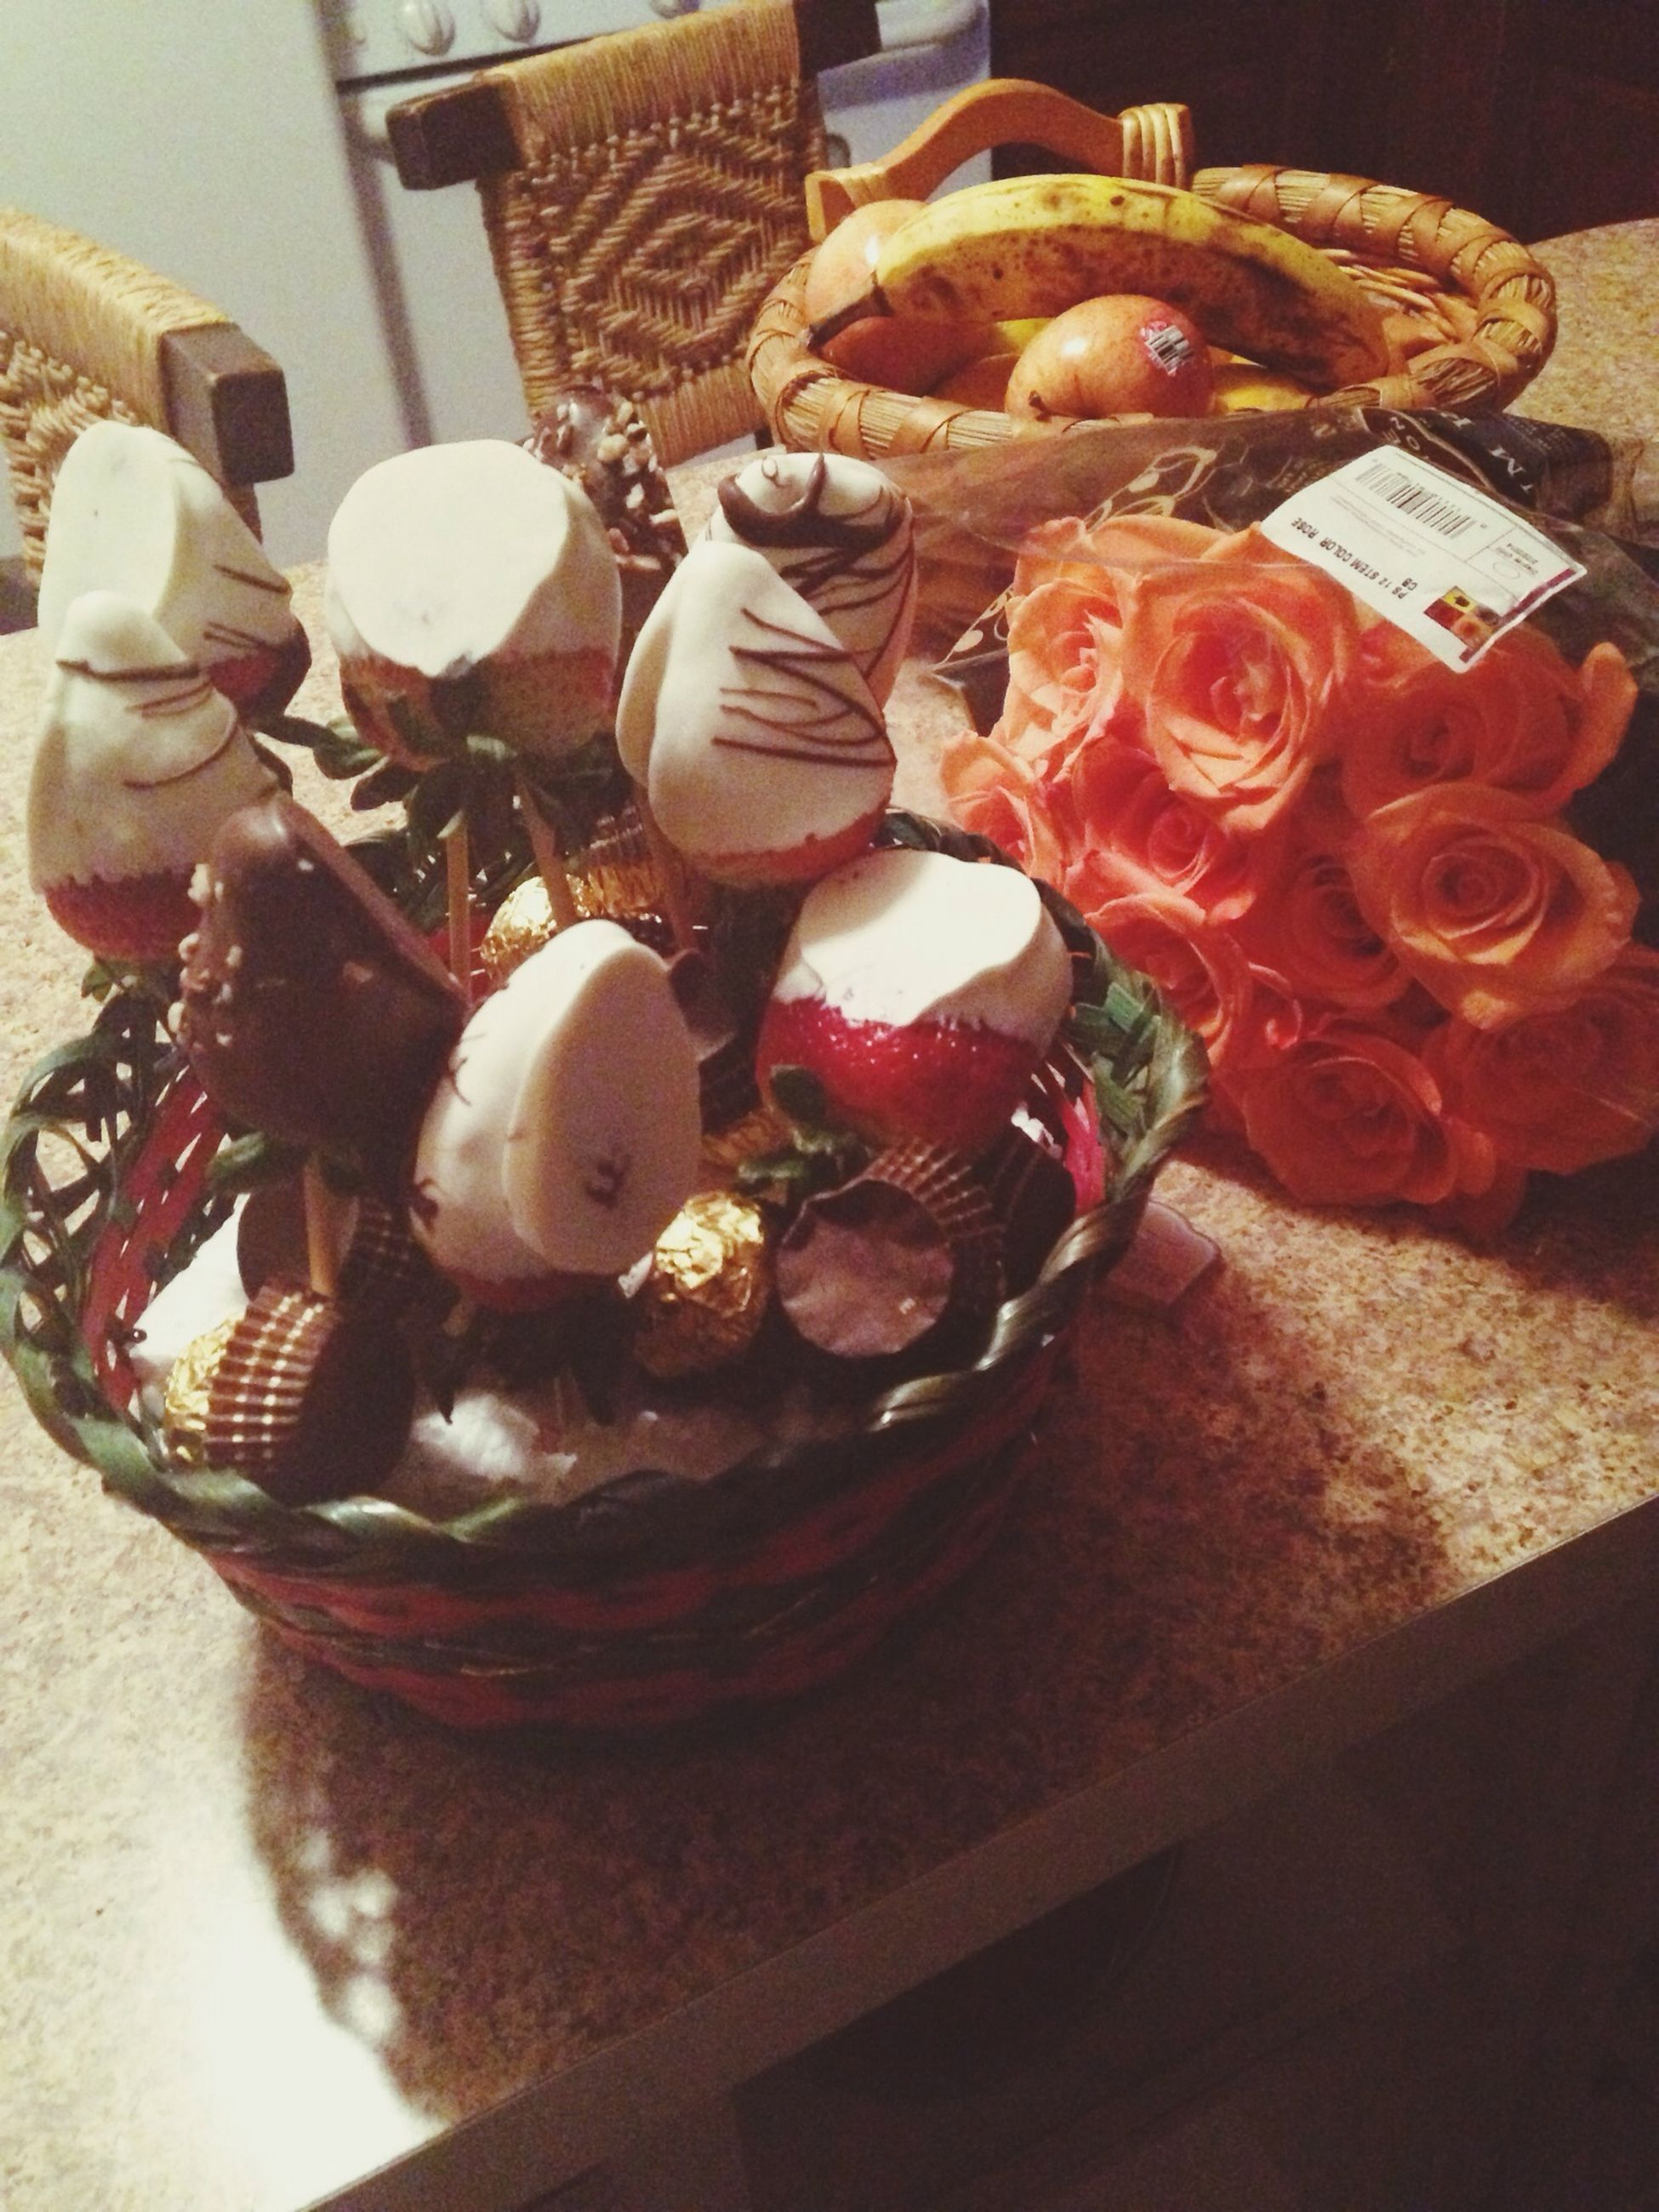 indoors, still life, food and drink, table, freshness, food, sweet food, high angle view, close-up, dessert, decoration, no people, indulgence, ready-to-eat, unhealthy eating, cake, plate, flower, variation, fruit